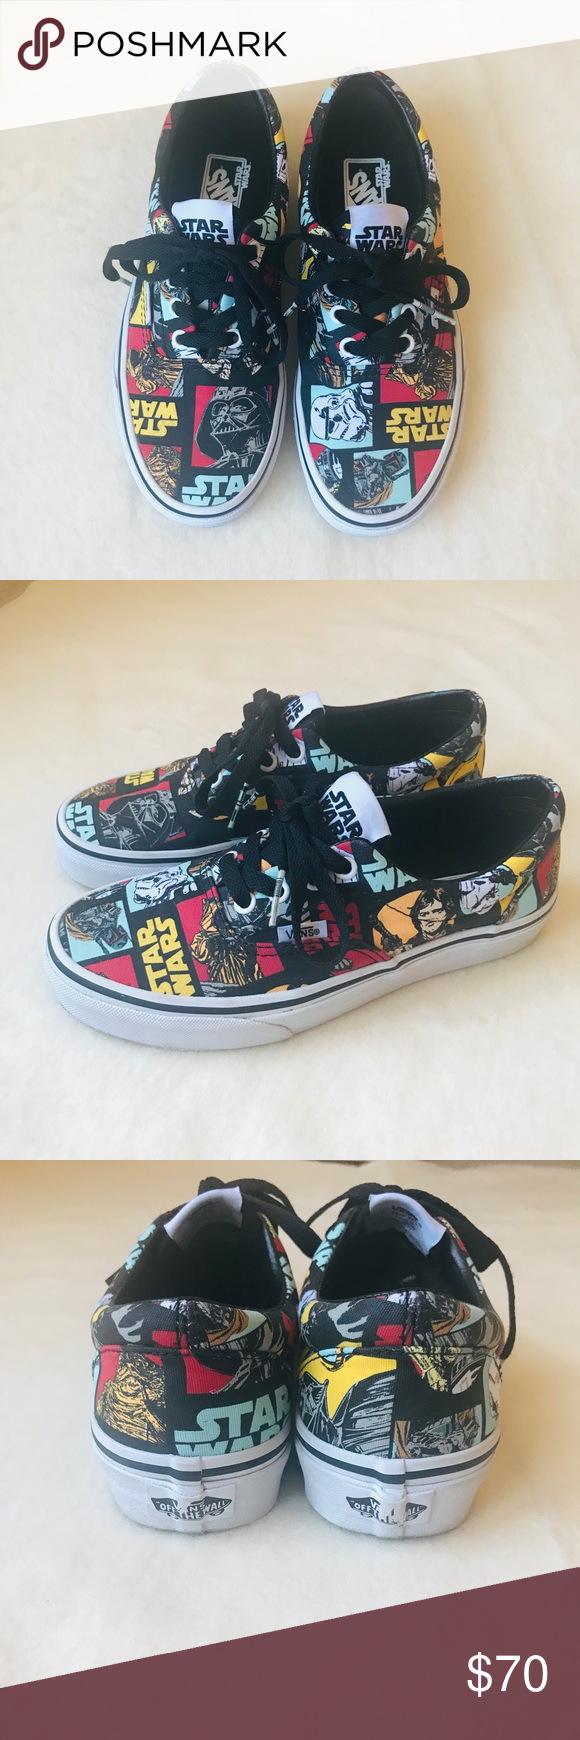 4dae2c8697bcc8 ✨🖤Rare Star Wars VANS Era Classic Repeat🖤✨ Authentic Limited Edition VANS  Star